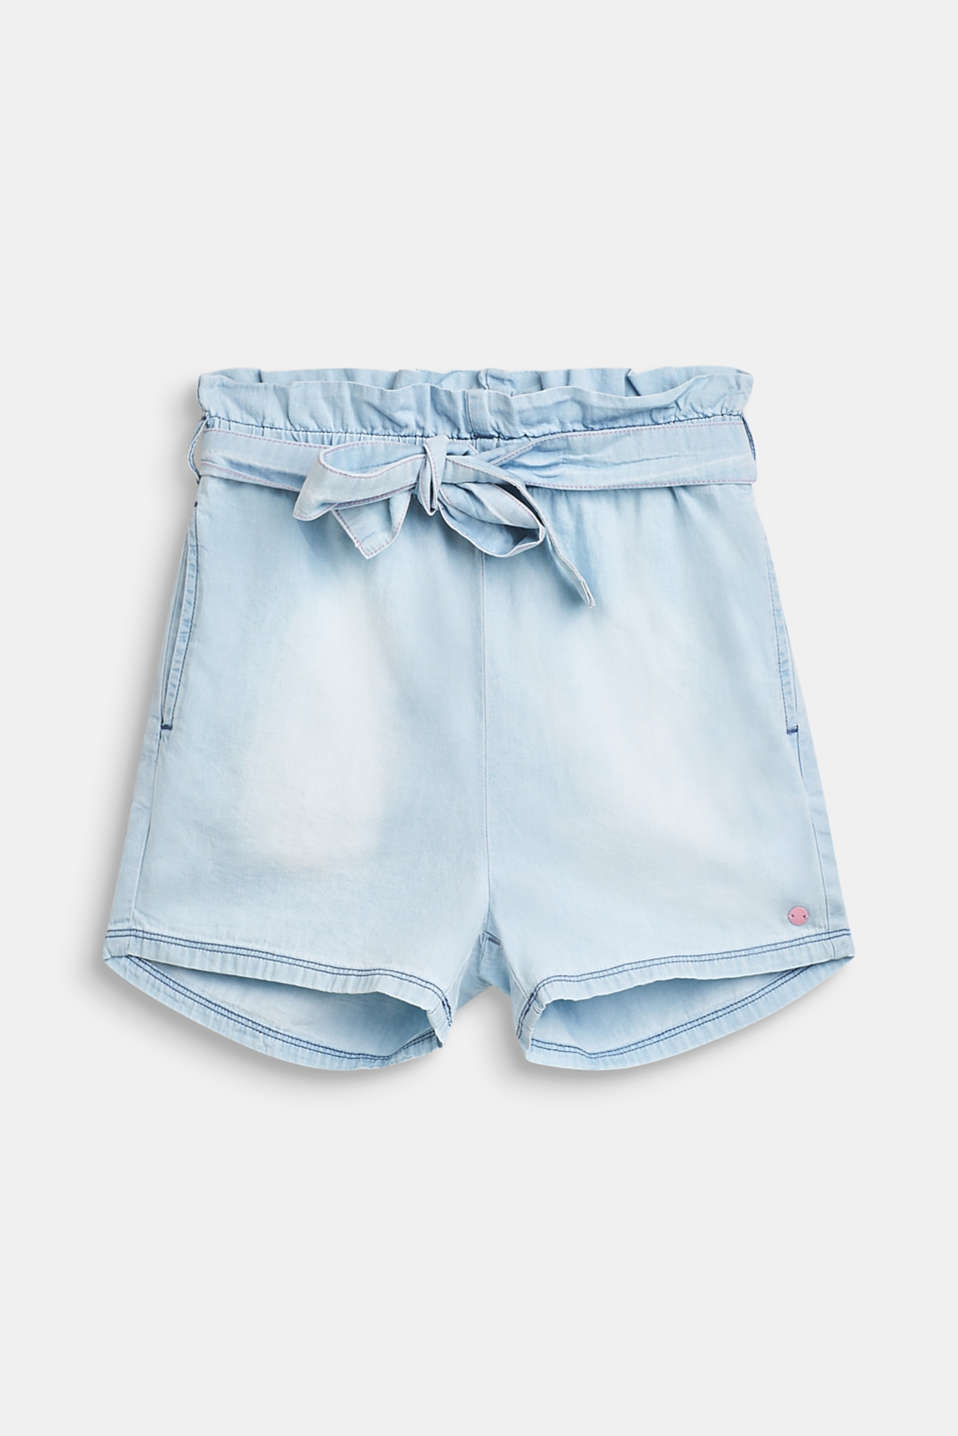 Paper bag shorts with a tie-around belt, 100% cotton, LCBLEACHED DENIM, detail image number 0